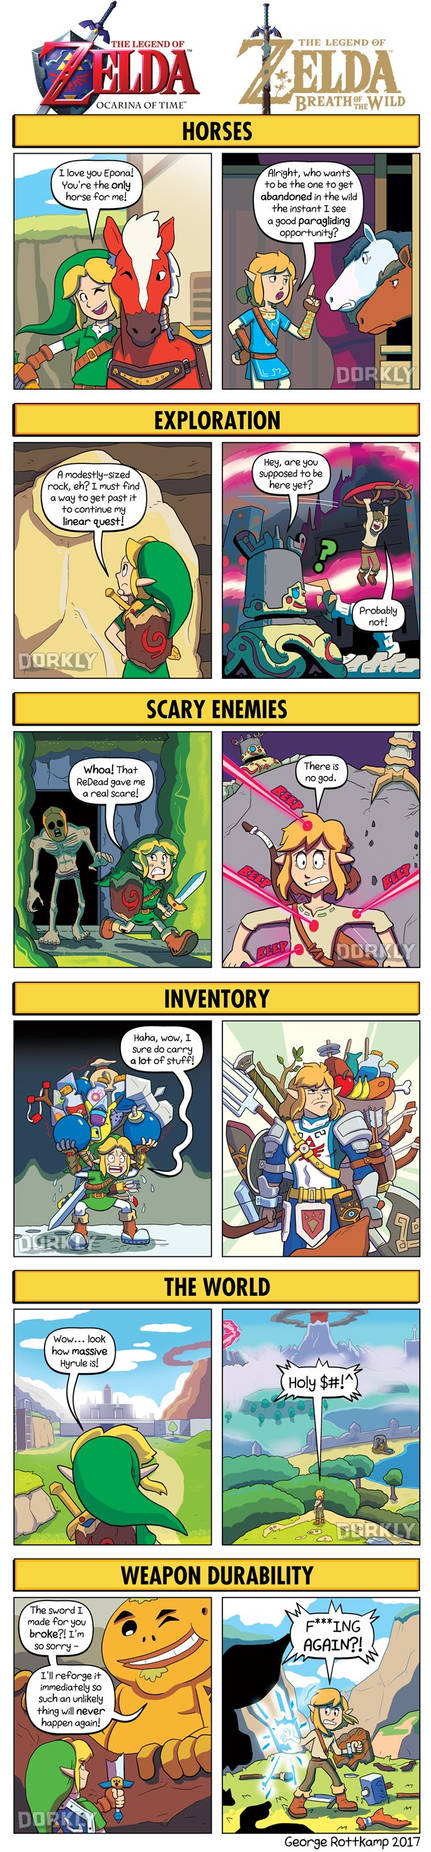 DORKLY: Ocarina of Time vs. Breath of the Wild